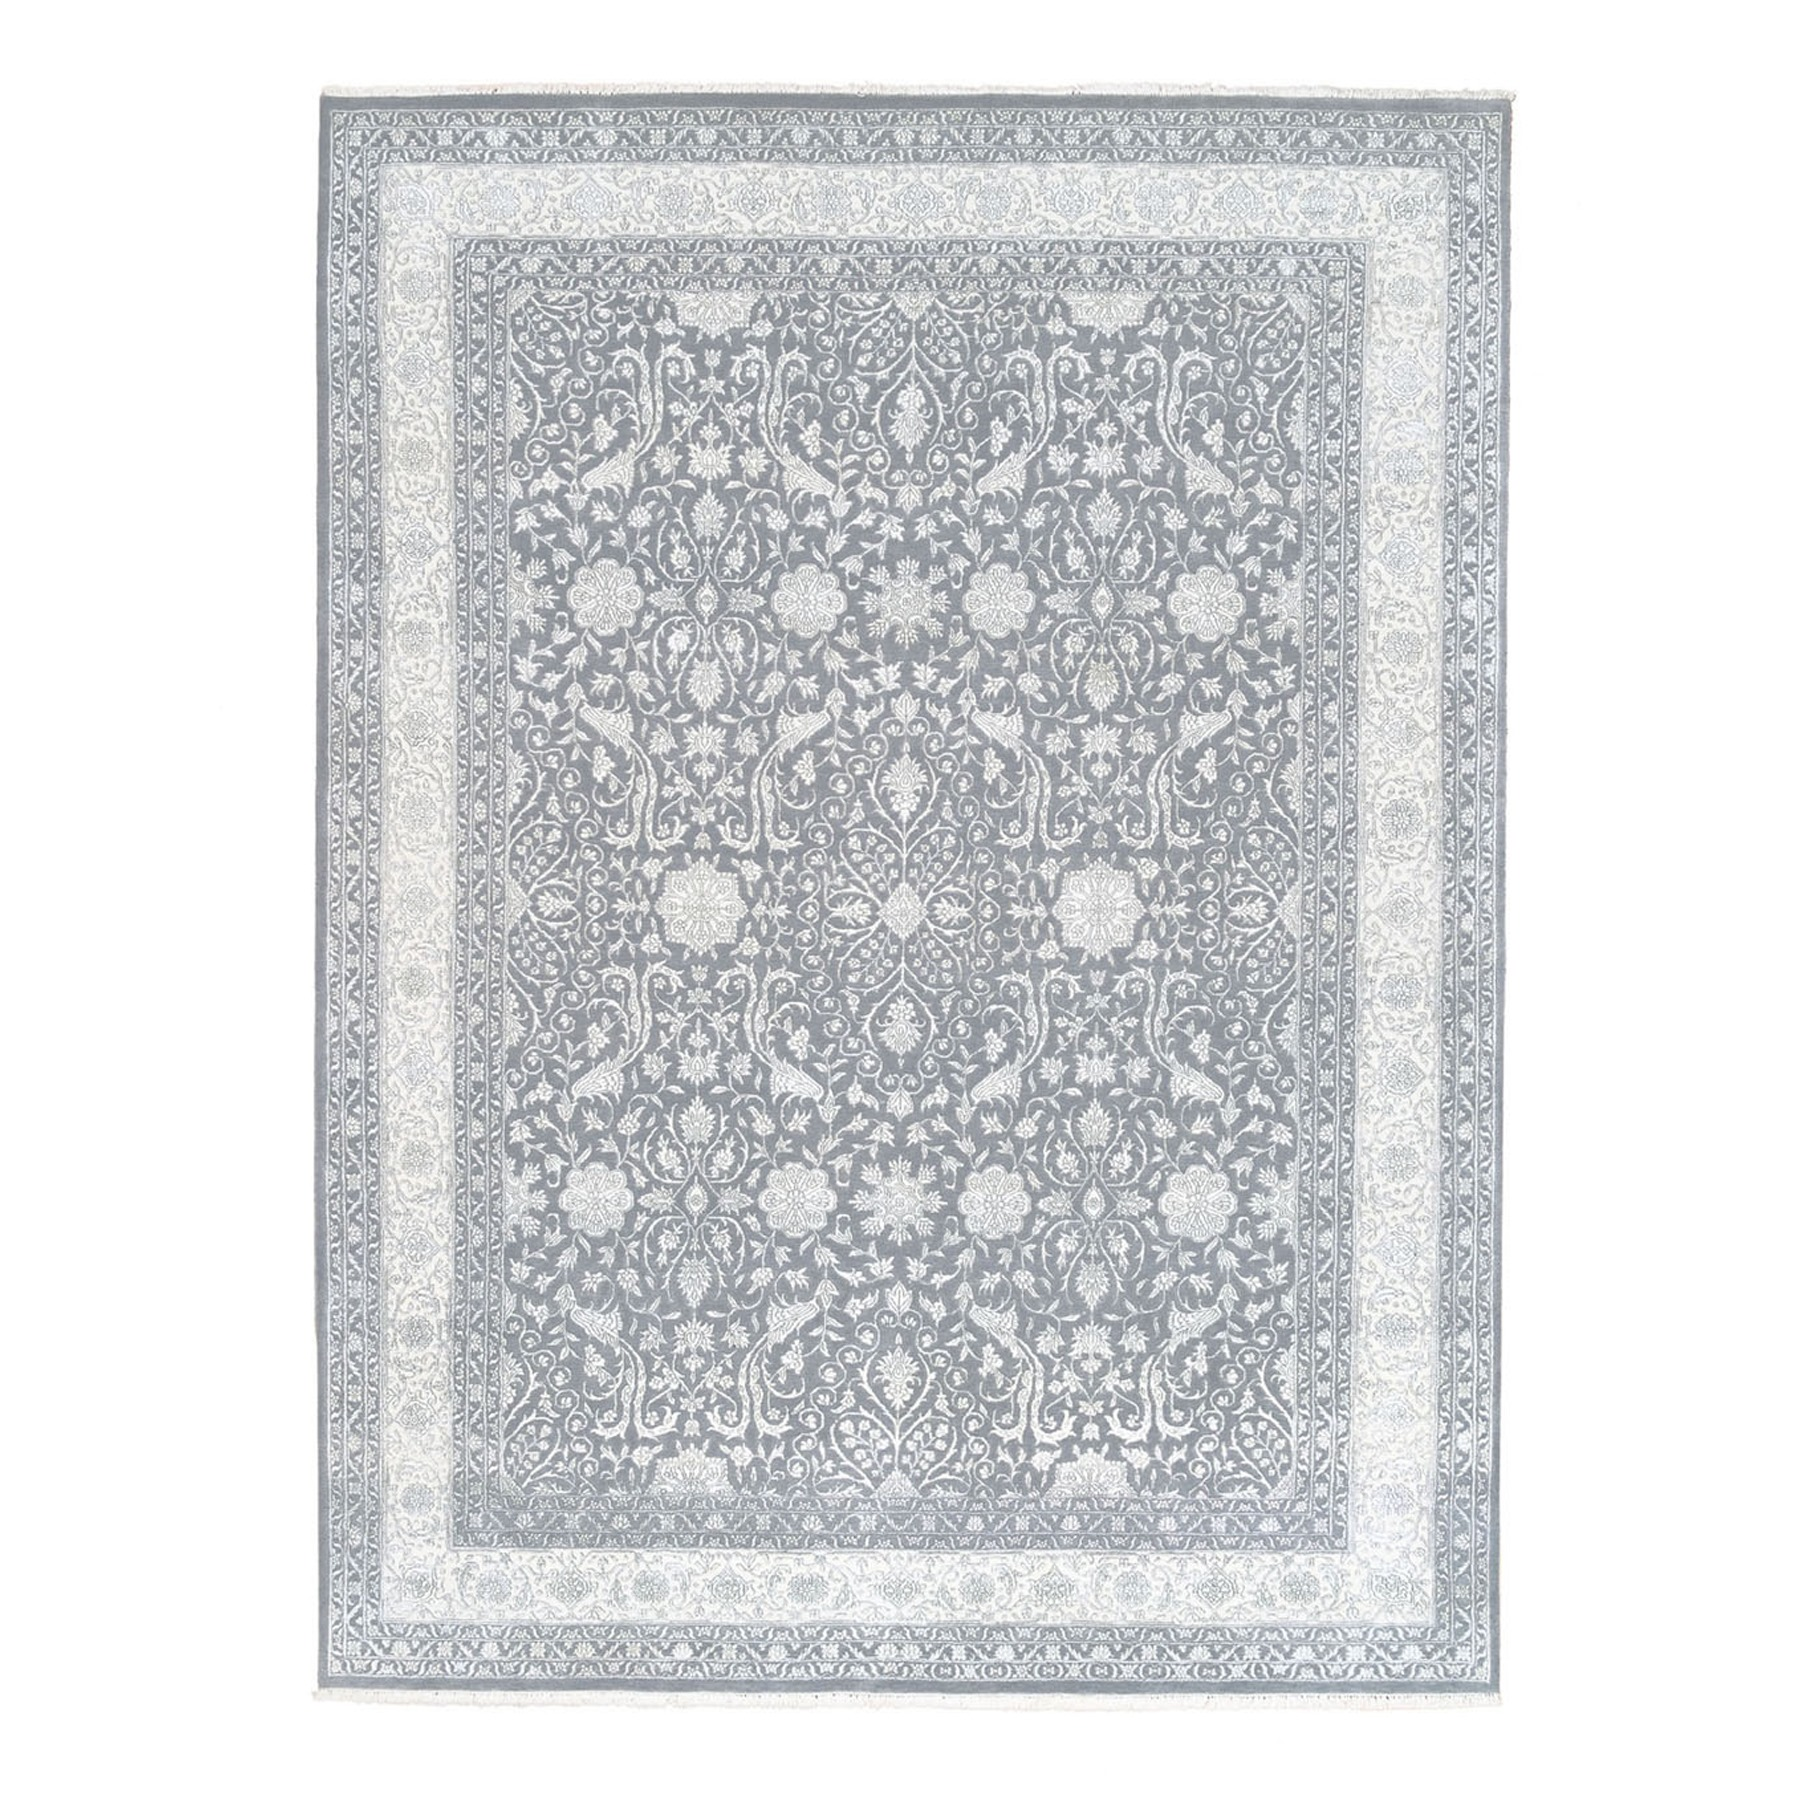 Pirniakan Collection Hand Knotted Grey Rug No: 1124480